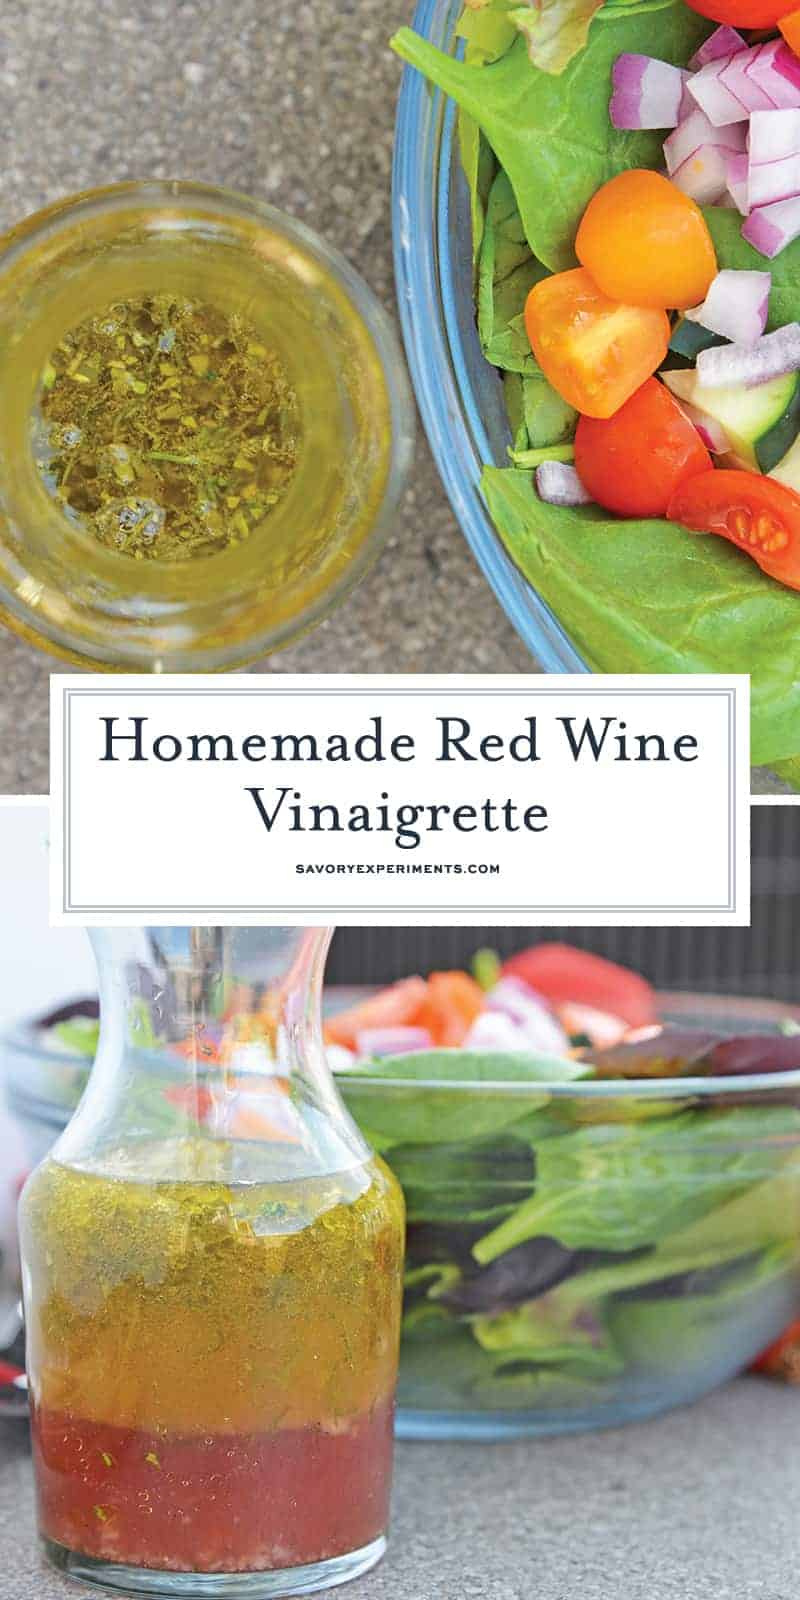 This Red Wine Vinaigrette is a deliciously easy homemade salad dressing recipe, taking only a fraction of the time it takes for you to chop up a salad! #vinaigretterecipe #redwinevinaigrette #vinaigrettedressing www.savoryexperiments.com